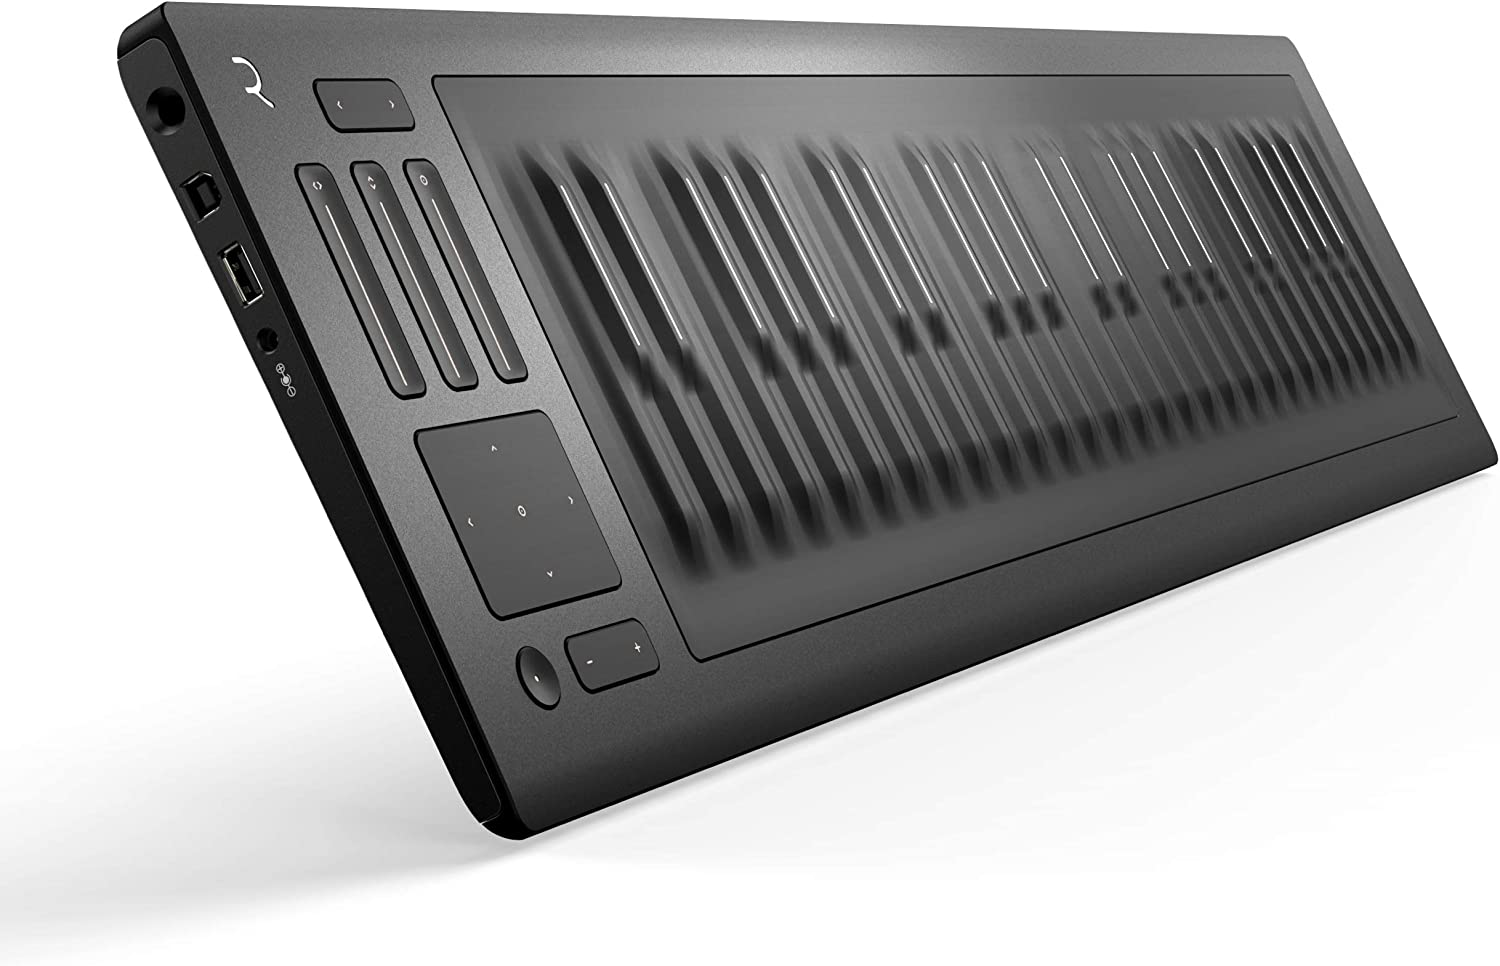 ROLI | Seaboard RISE 49 - Expressive MIDI Keyboard Controller | Use Intuitive Gestures on a Pressure-Responsive Surface to Bend Pitch, Adjust Timbre